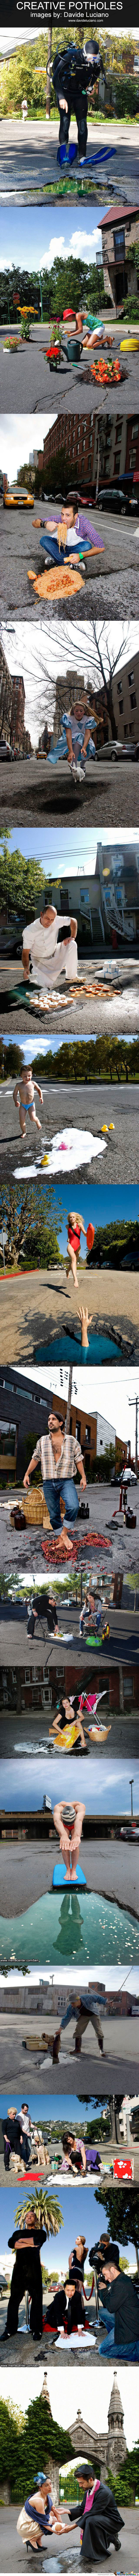 Creative Potholes By Davide Luciano